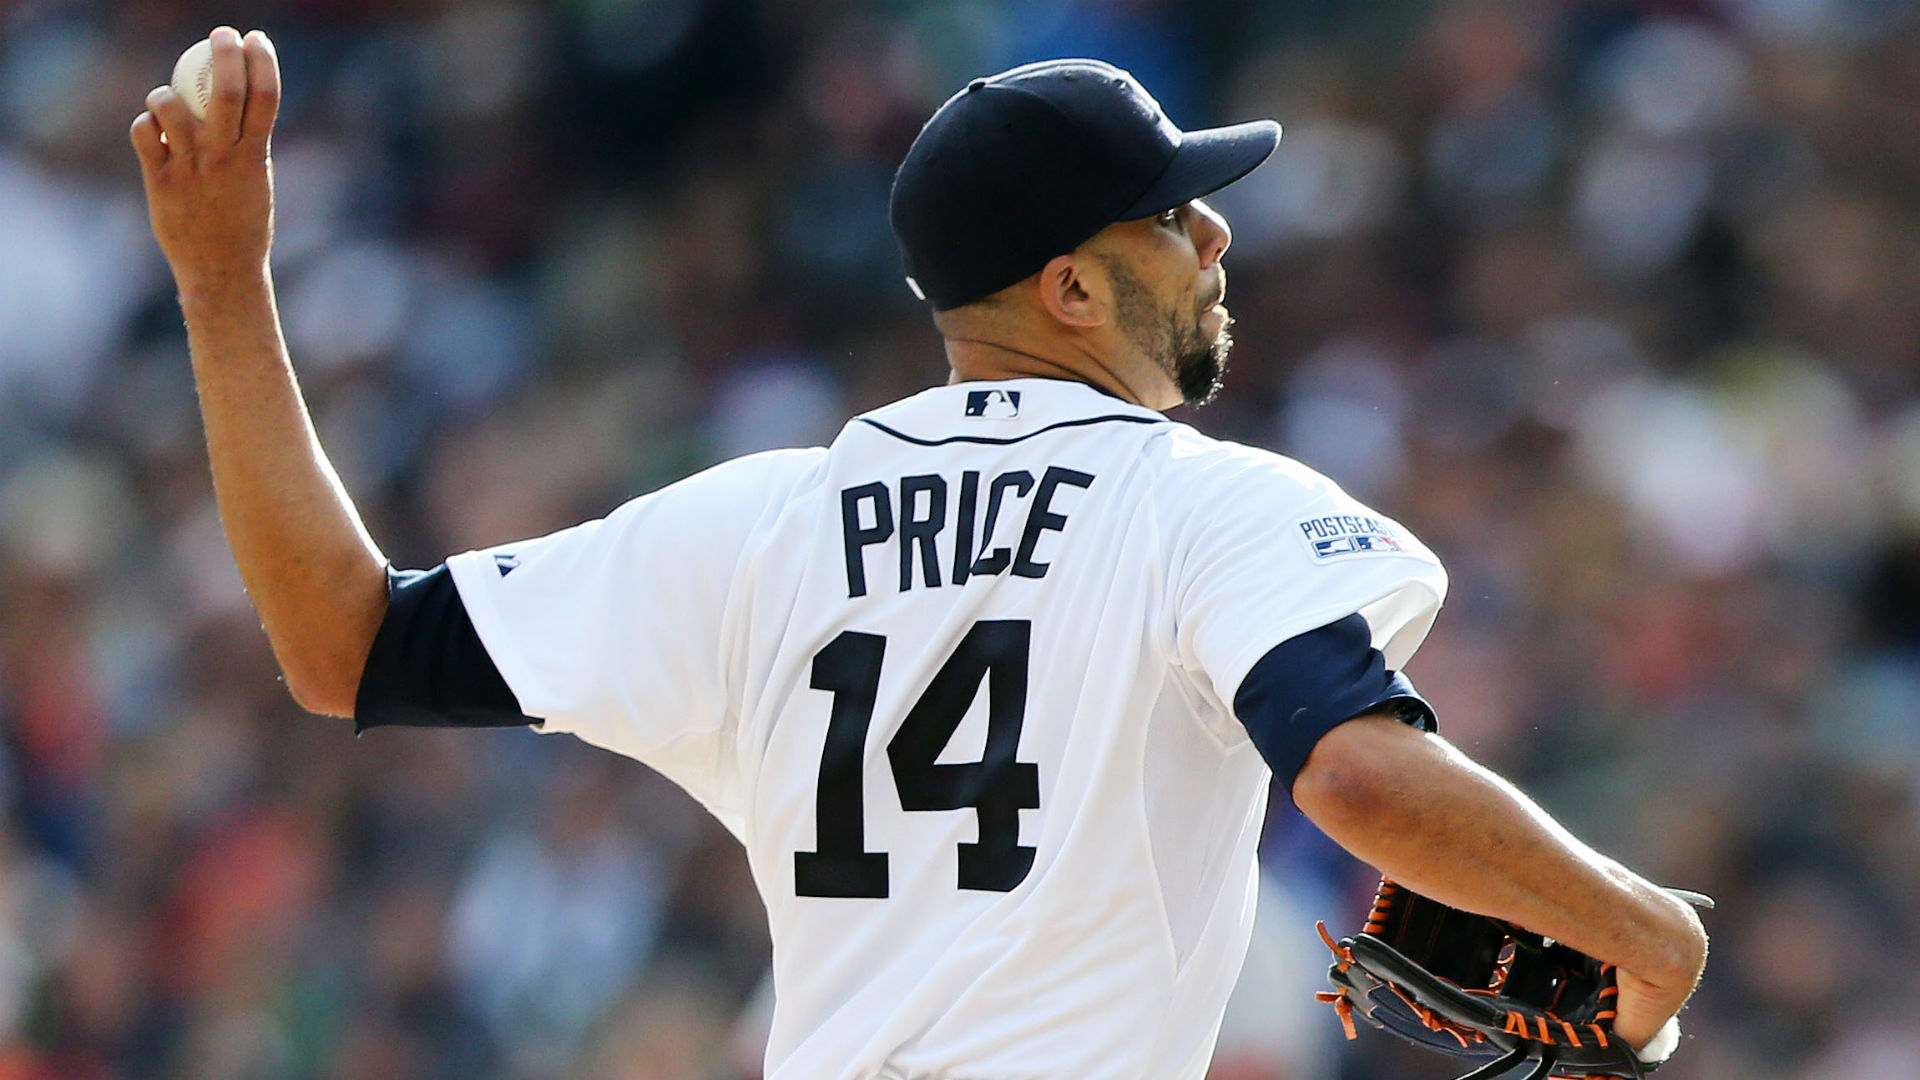 Tigers pitcher David Price